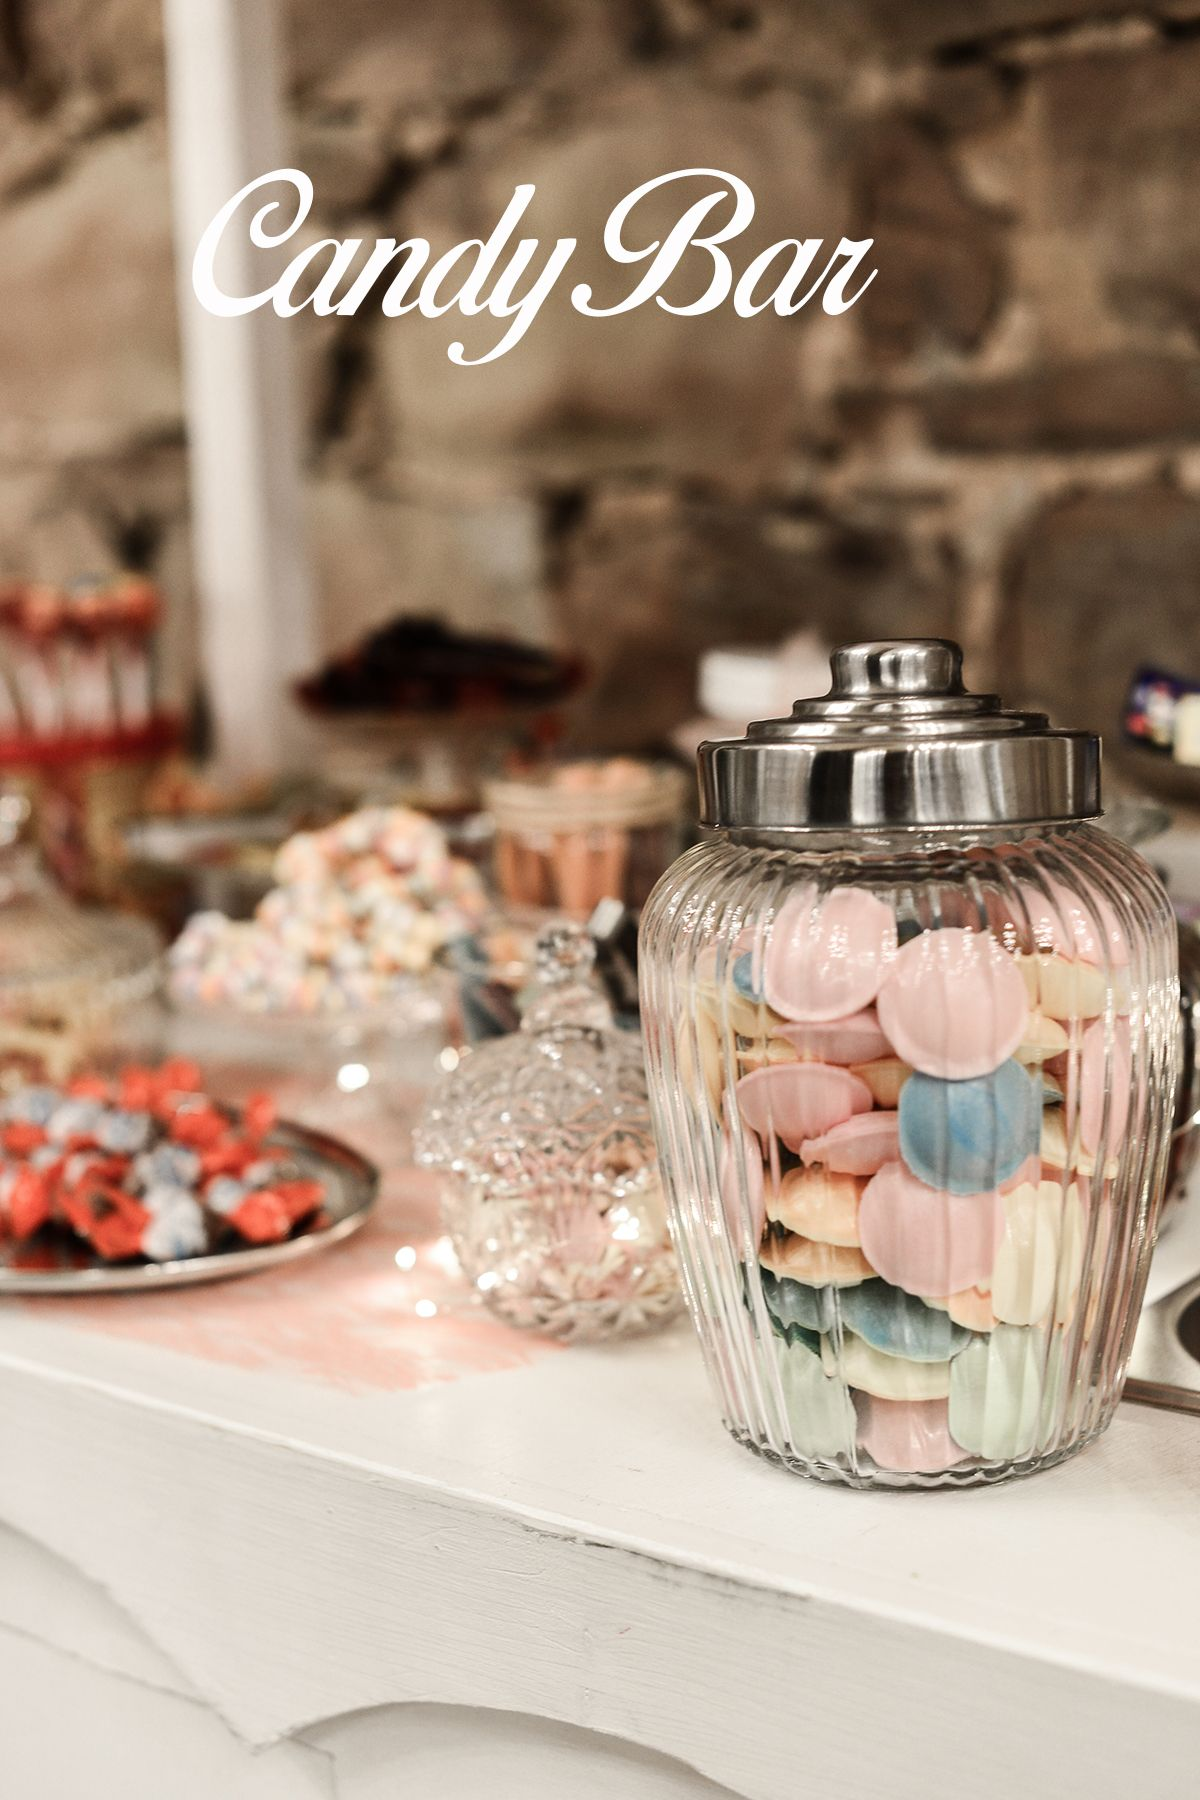 Candy Bar Hochzeit Vintage Candy Bar Zubehor Candy Ideen